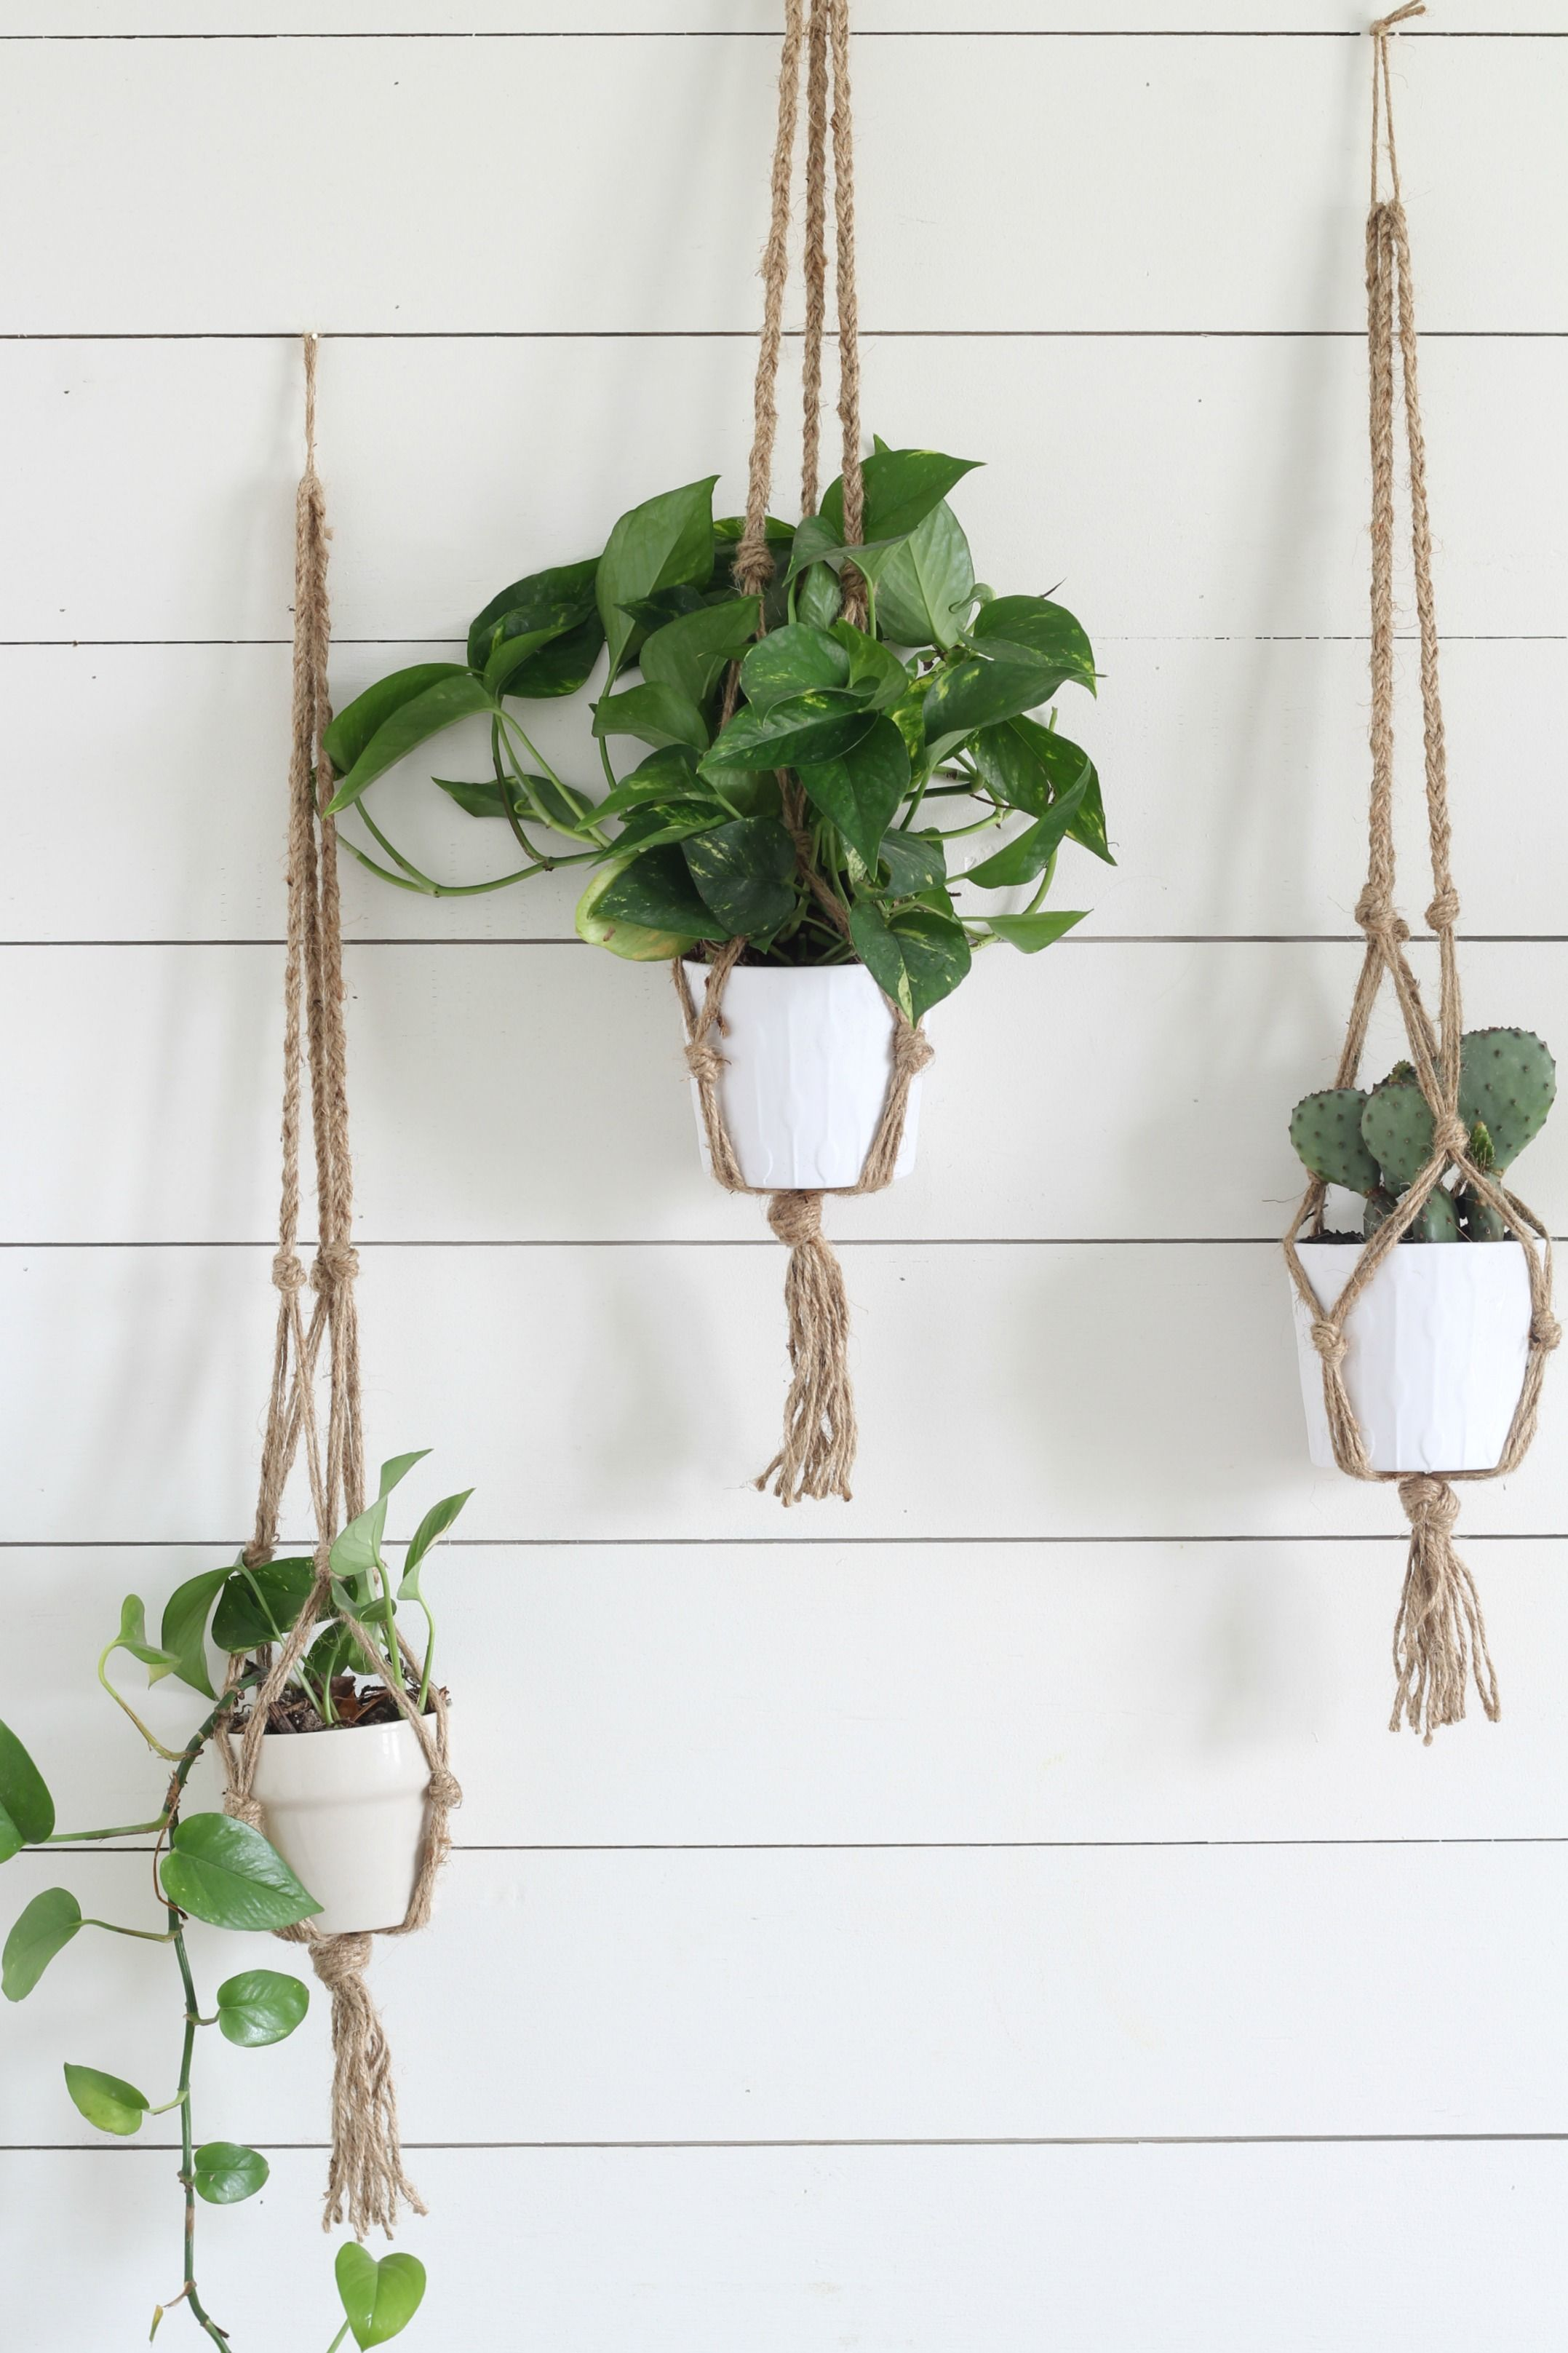 Simple Diy Macrame Plant Hanger With Video Tutorial Diy Plant Hanger Macrame Plant Hanger Plant Hanger